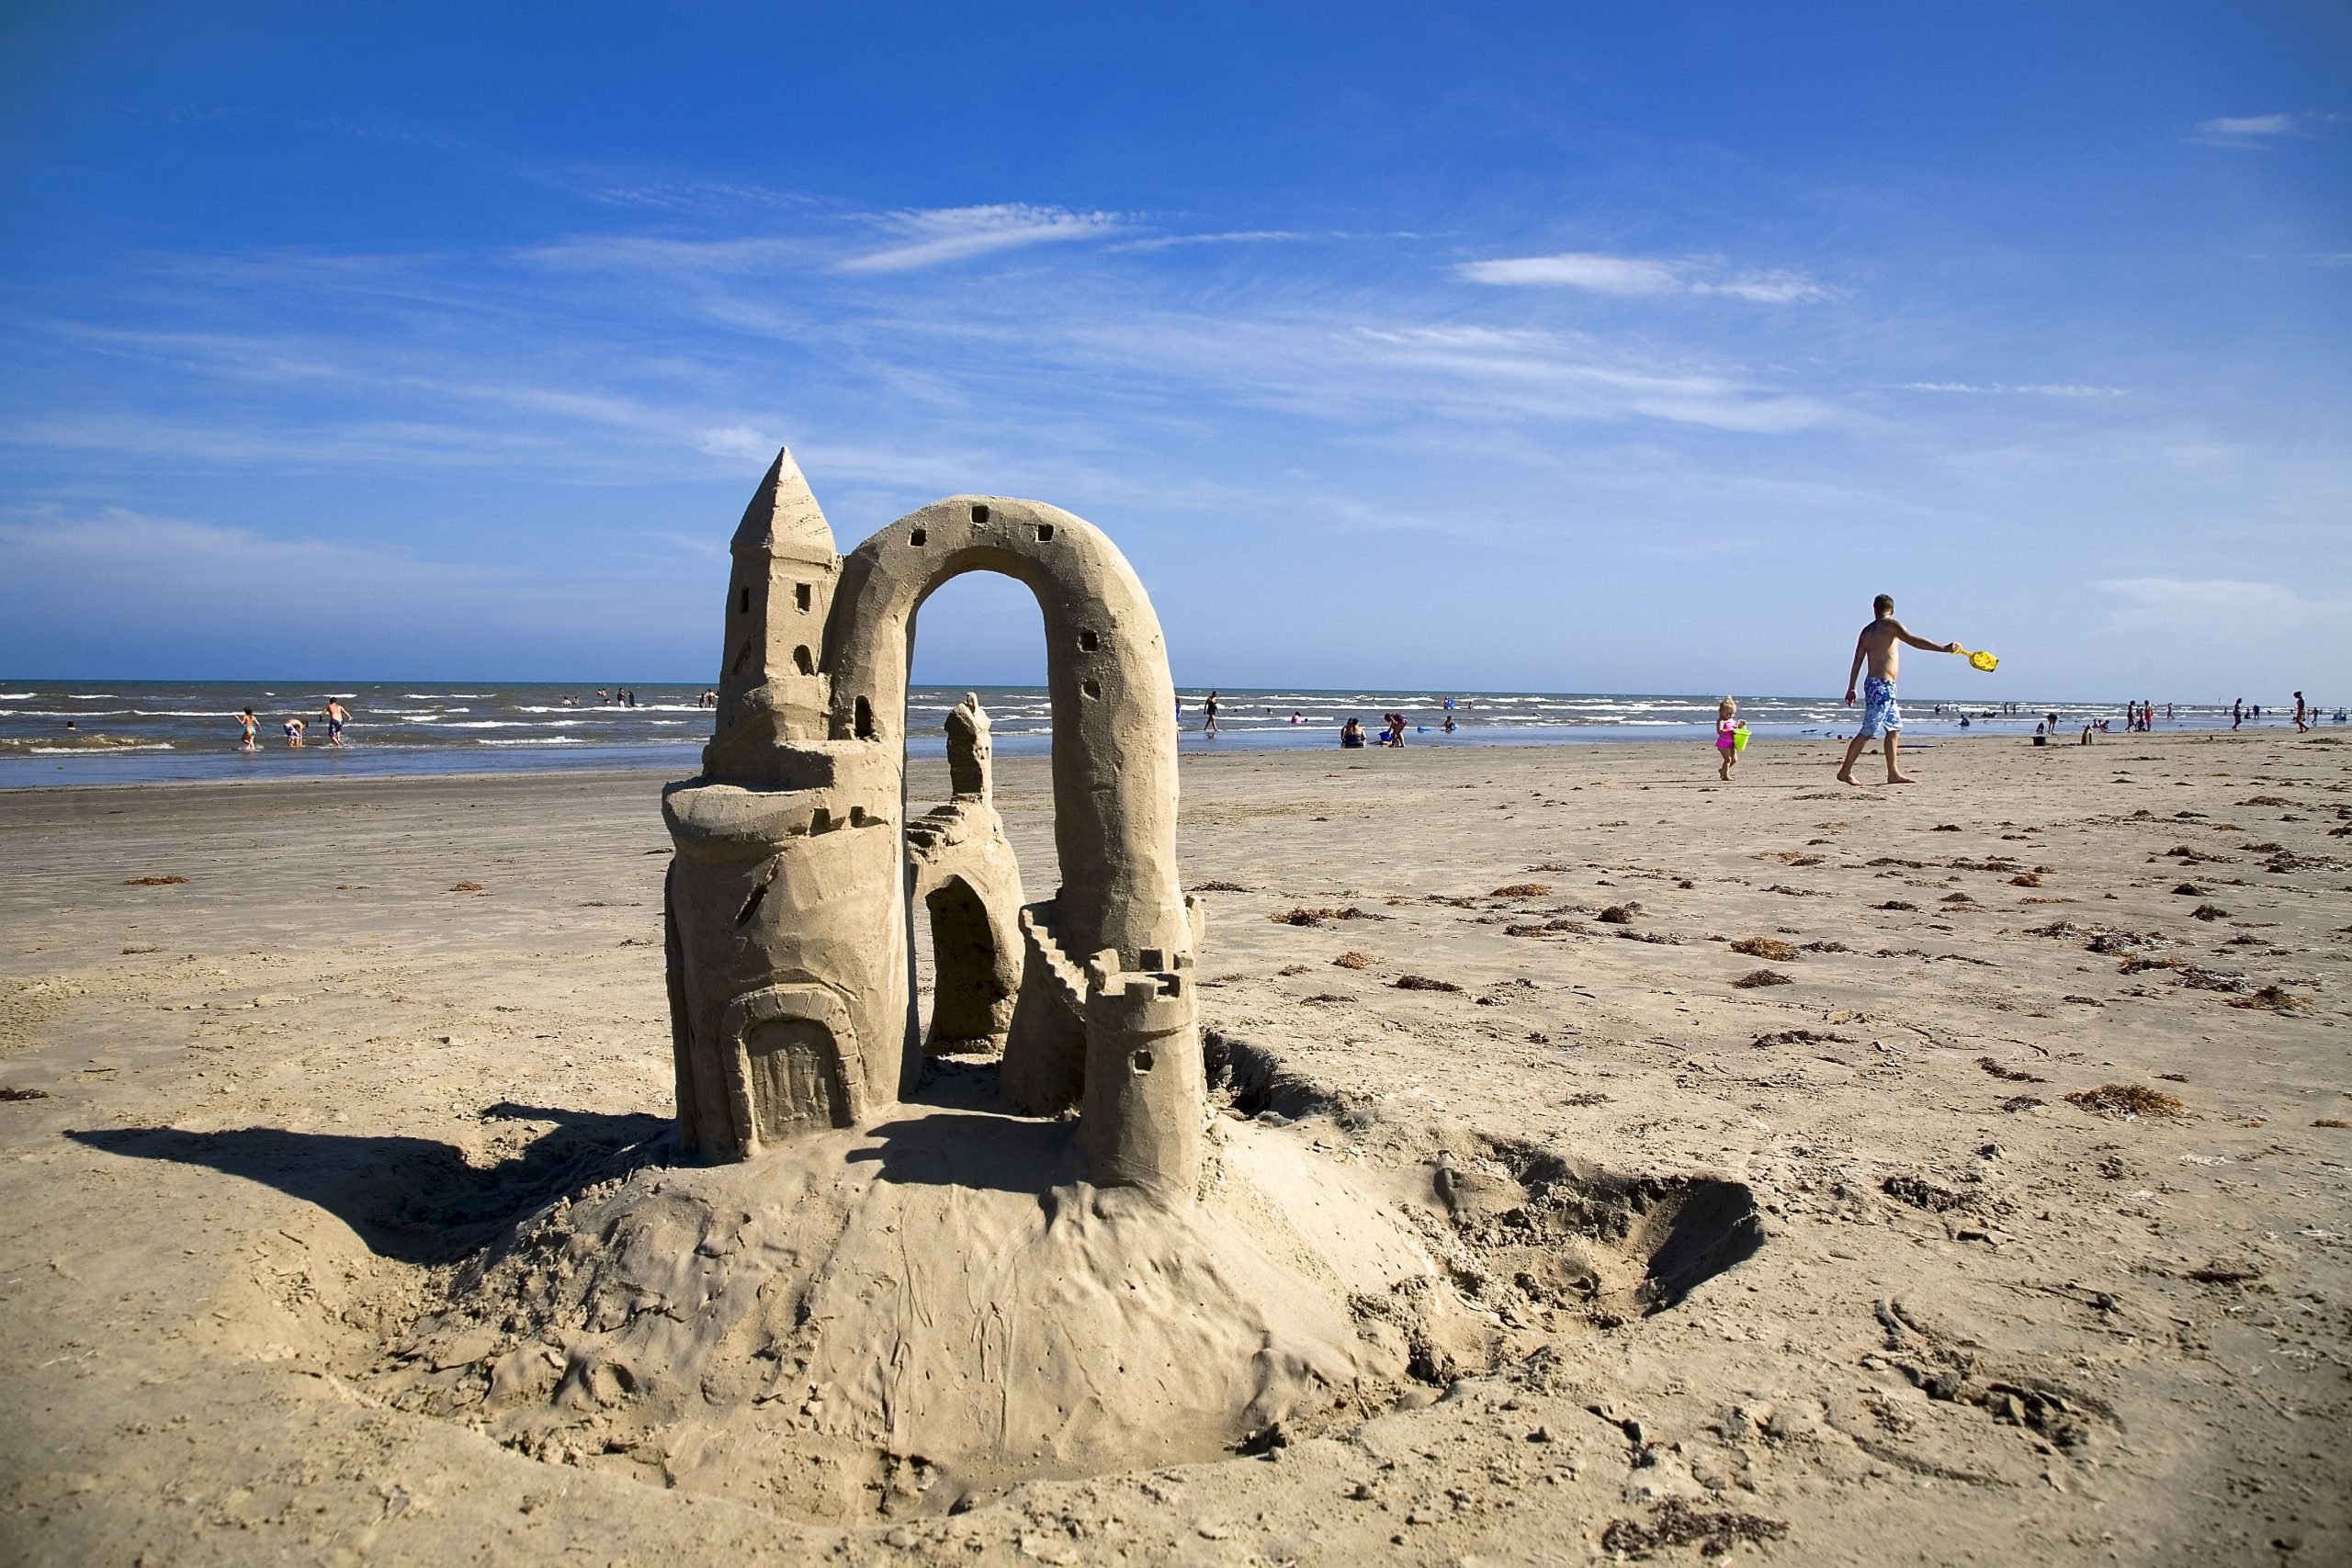 Small sandcastle on the Port Aransas beach with children playing in the background. port aransas is one of the best destinations for spring break in texas